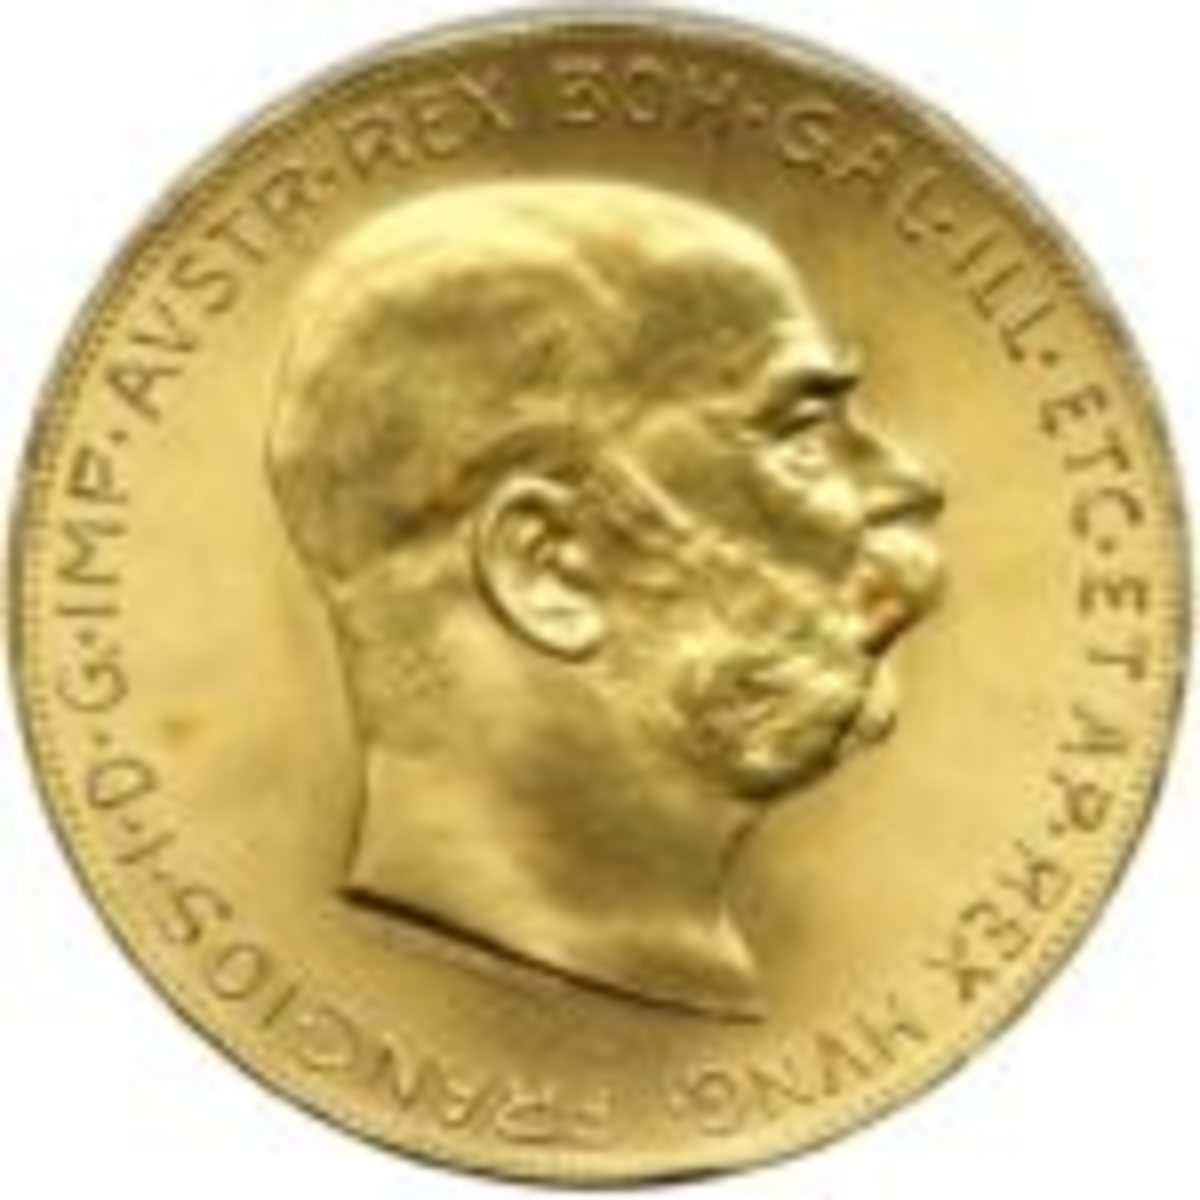 1915 Austrian gold coin with Franz Joseph I